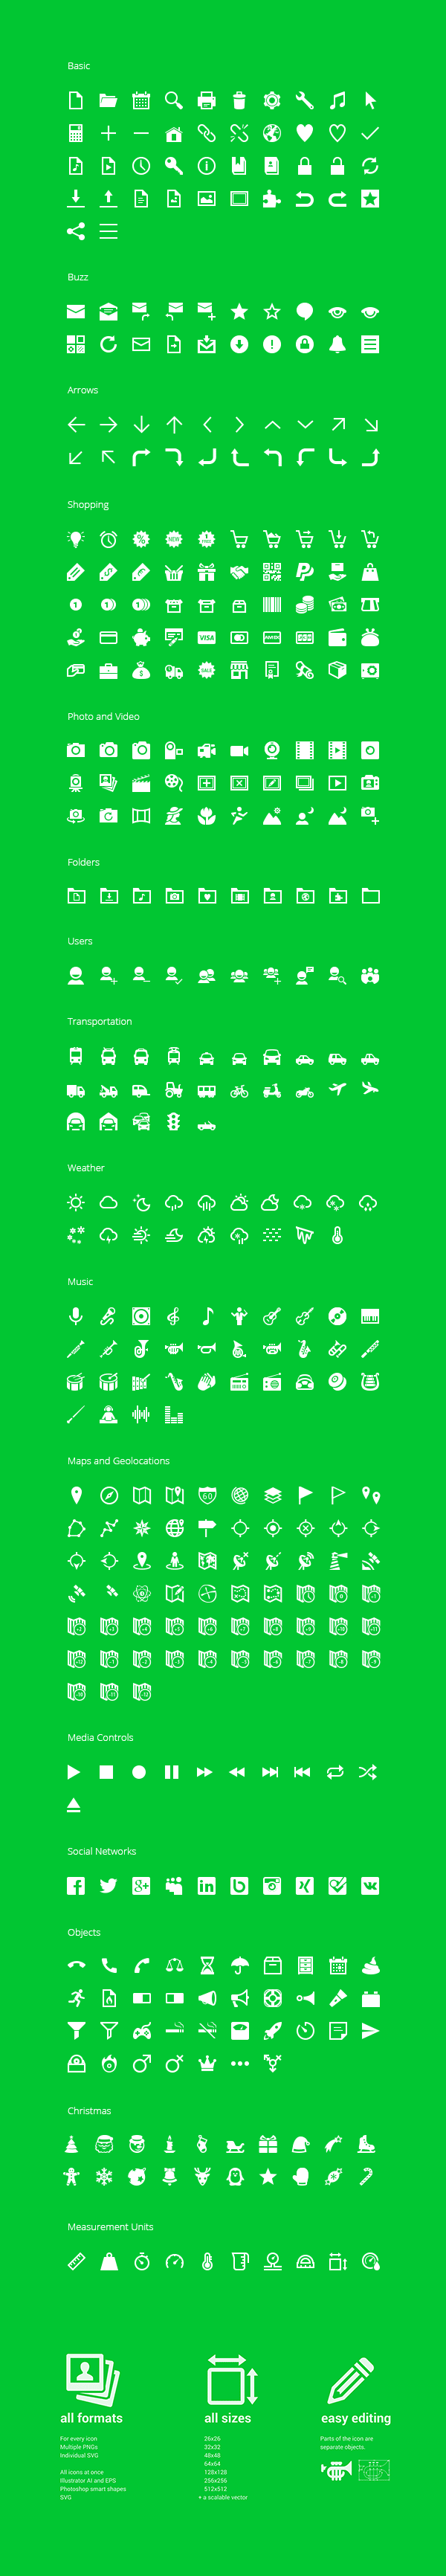 350 Free Android Icons 600 - 350 ícones Android grátis para download!